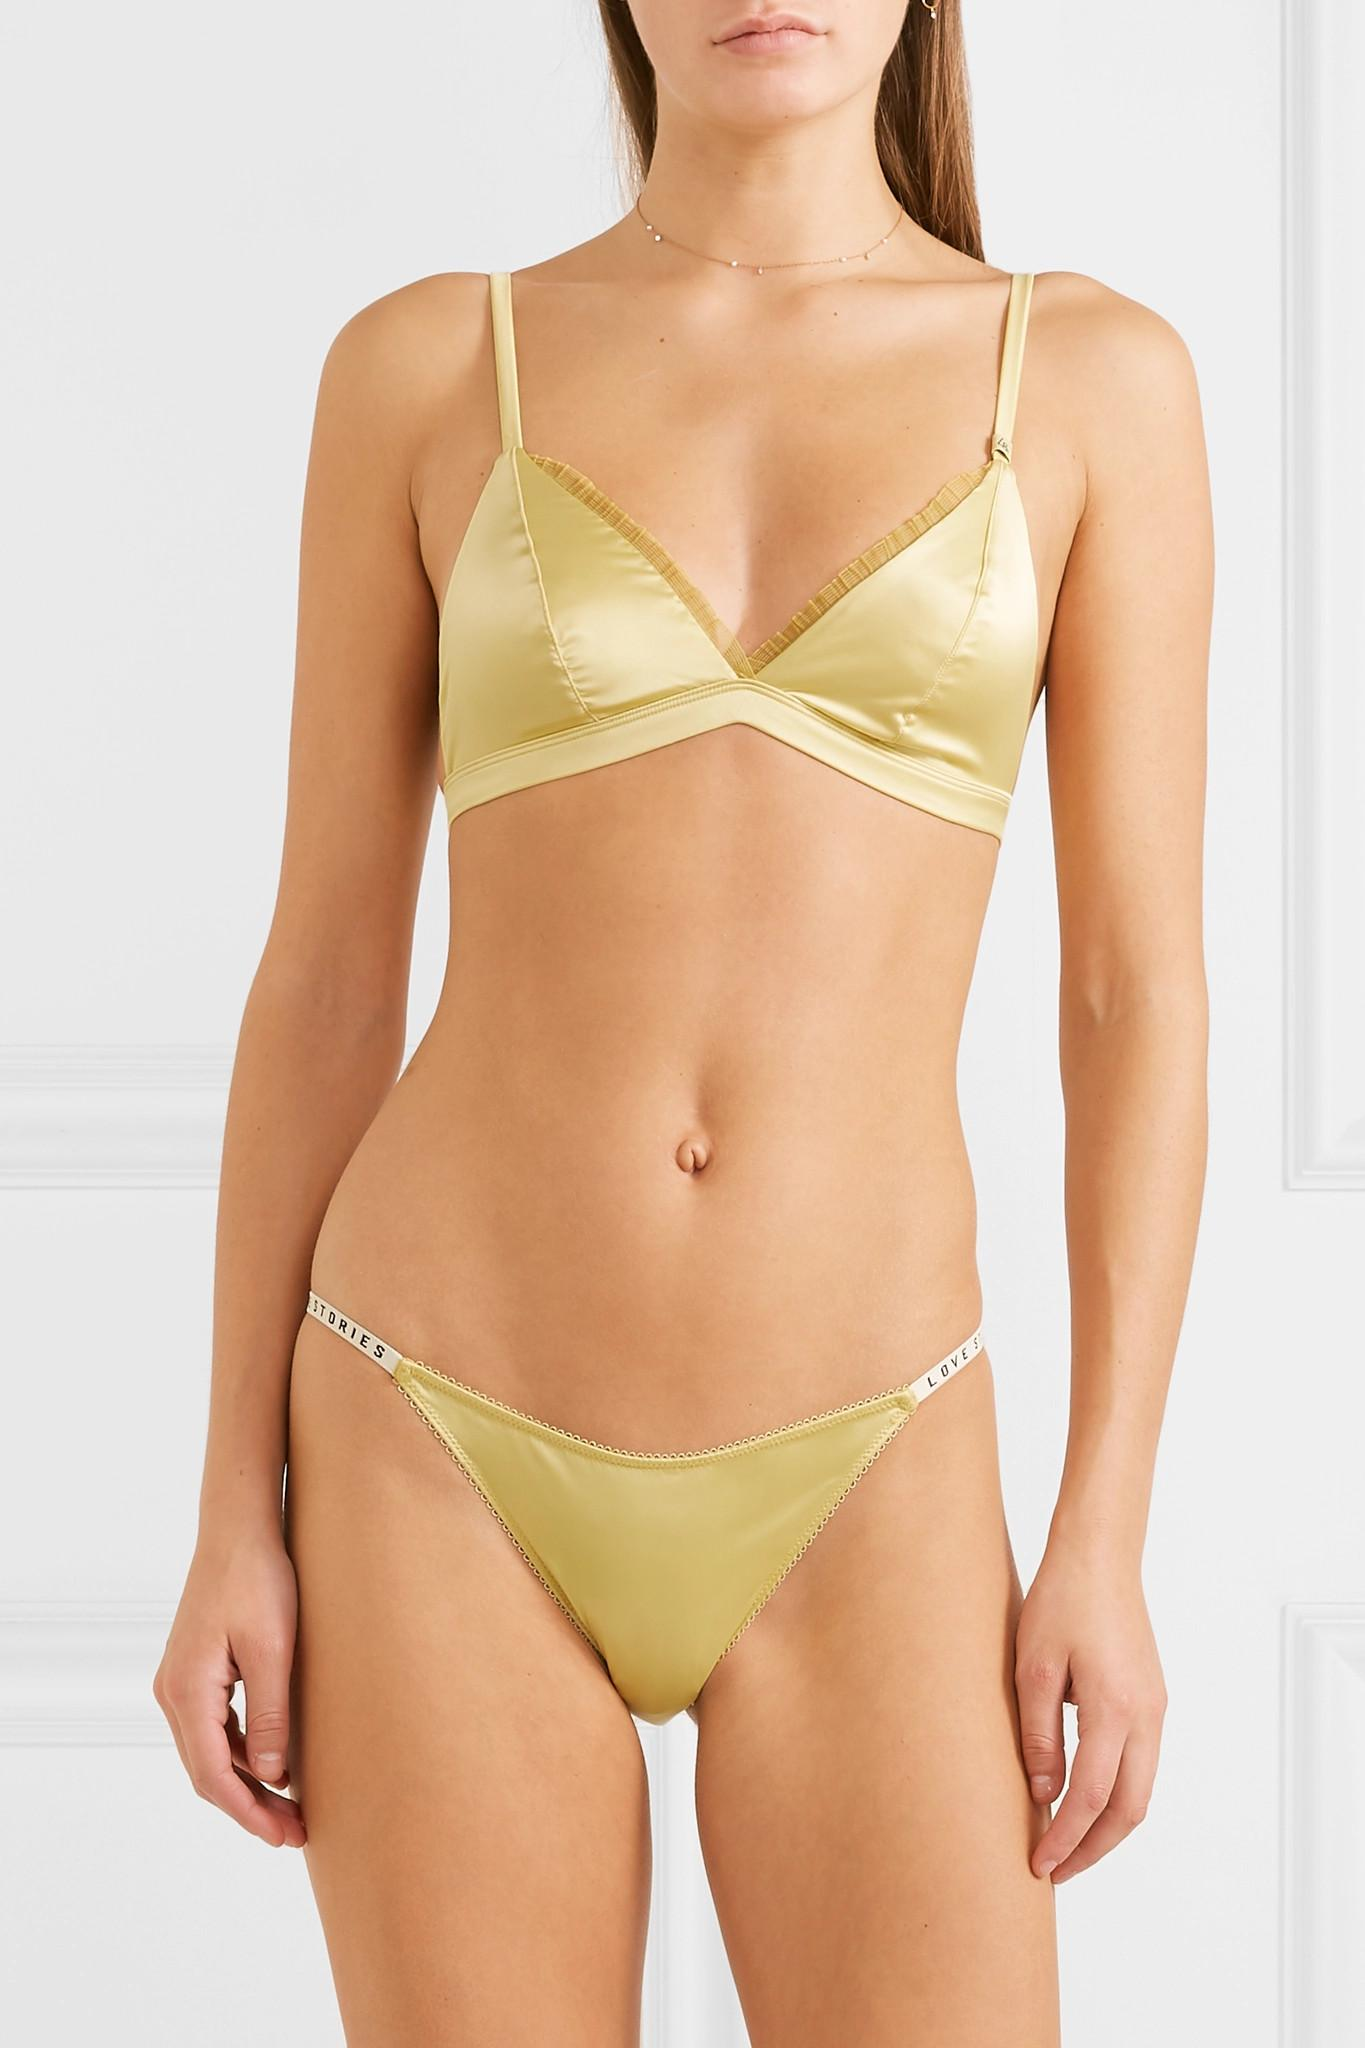 601c143aec LoveStories - Multicolor Darling Lace-trimmed Stretch-satin Soft-cup Triangle  Bra -. View fullscreen